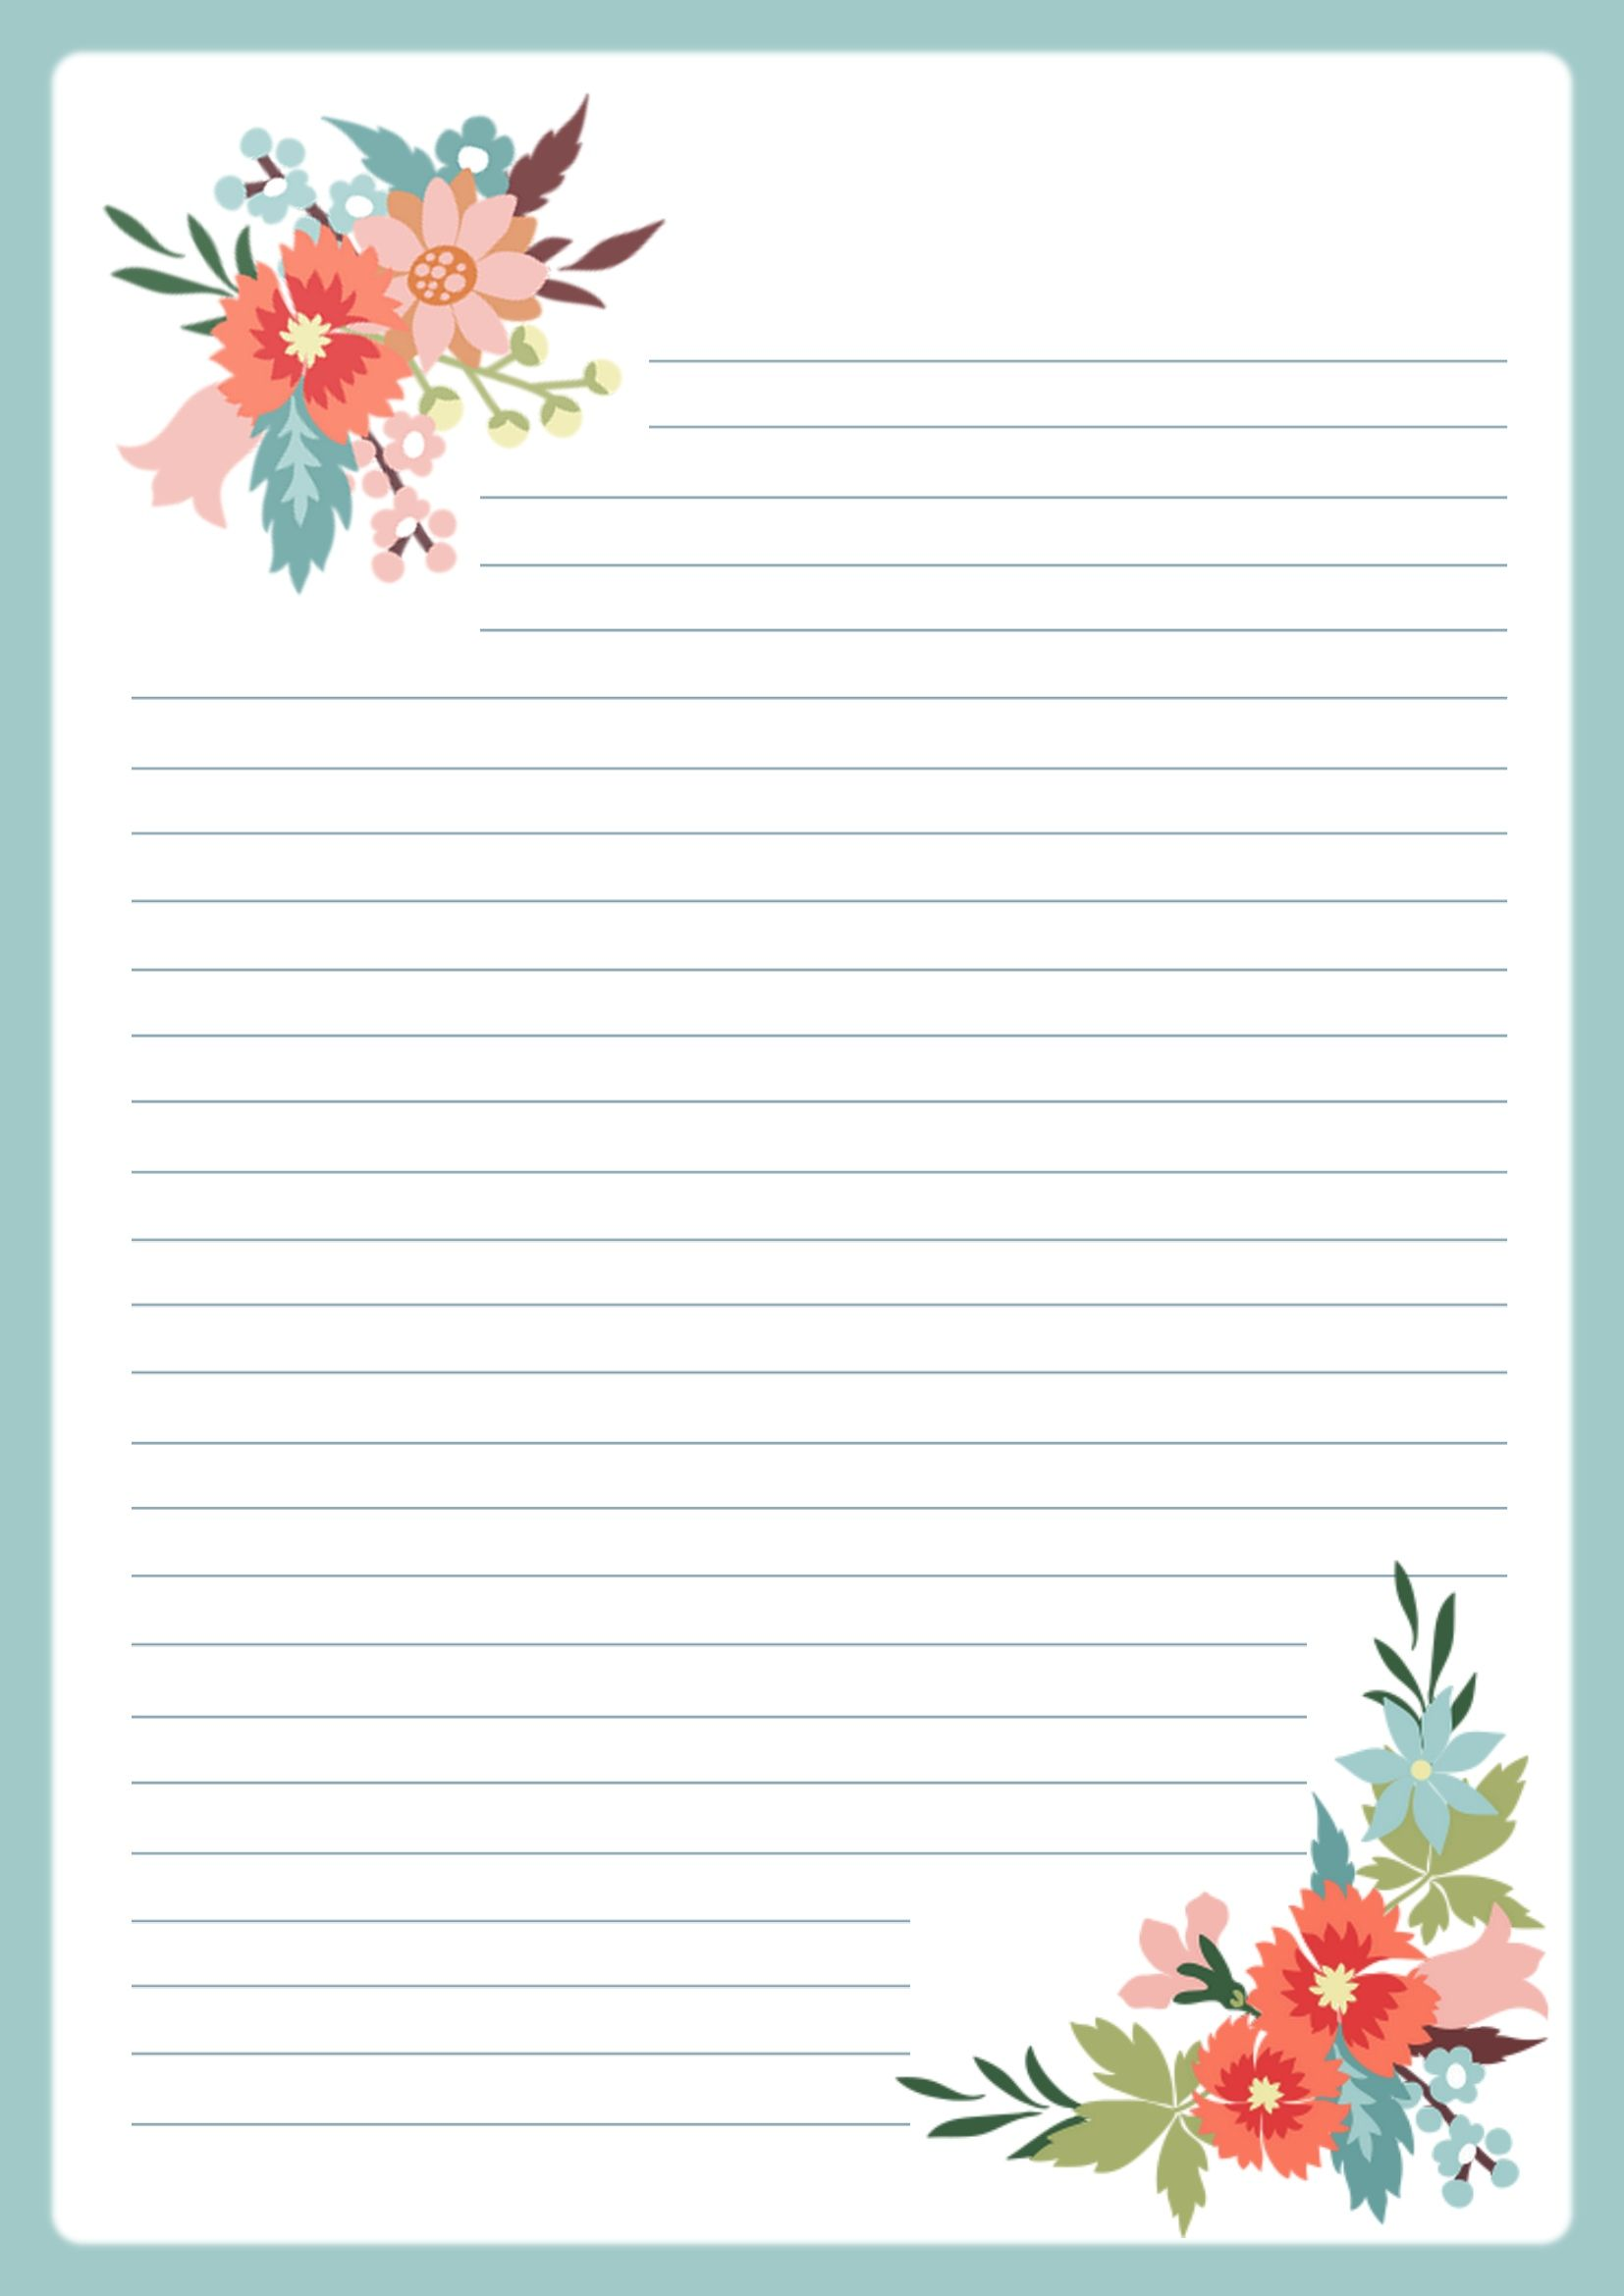 Letter Paper A4 Free Printable Stationery Writing Paper Printable Printable Paper Patterns Letter writing paper free printable